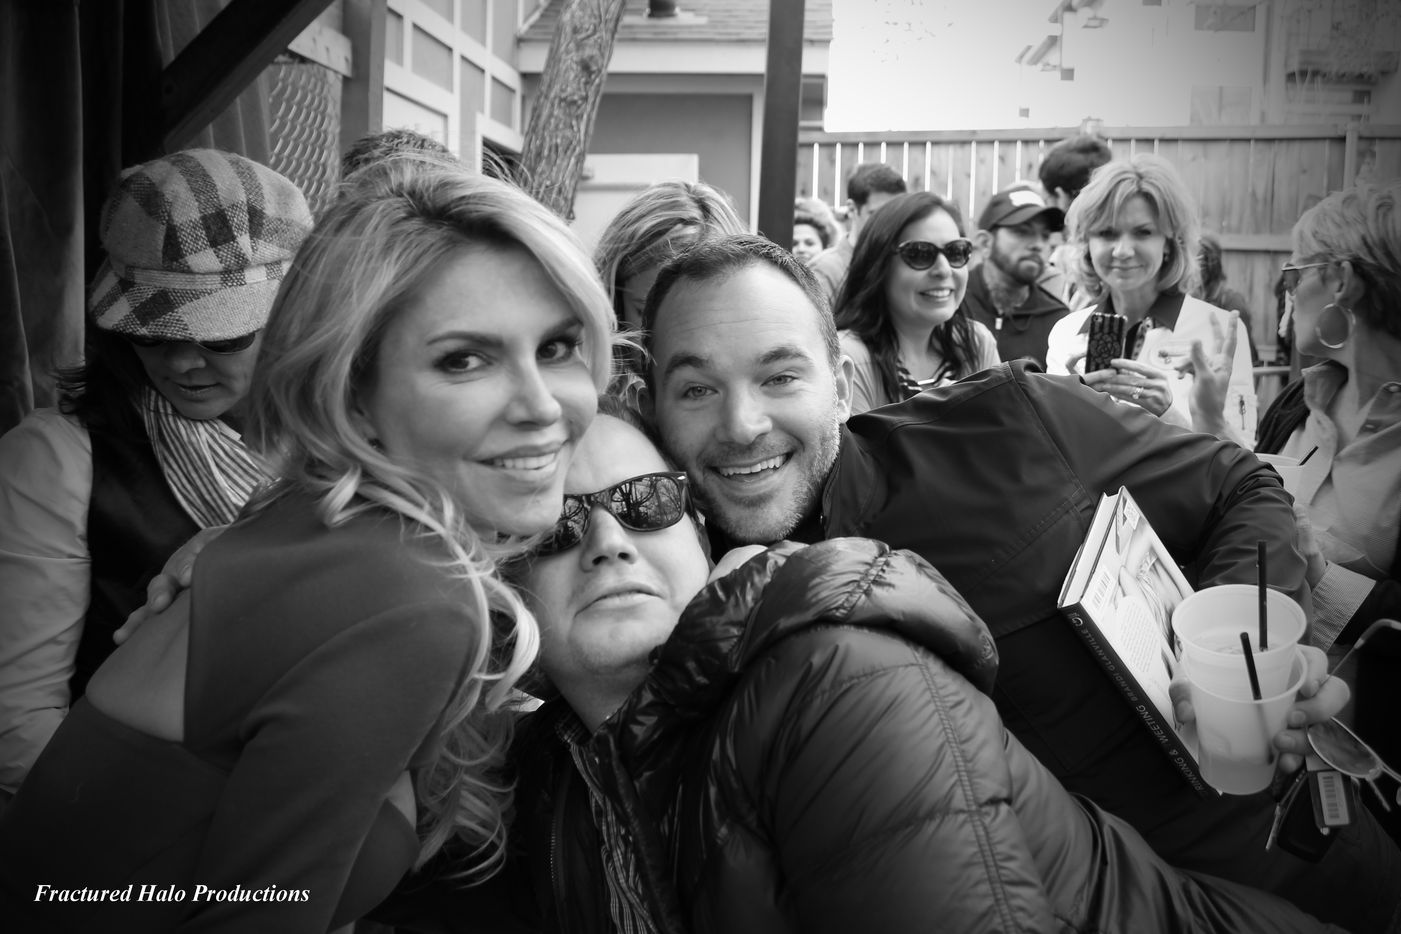 Reality star Brandi Glanville poses with fans during a book signing at the Grapevine Bar.